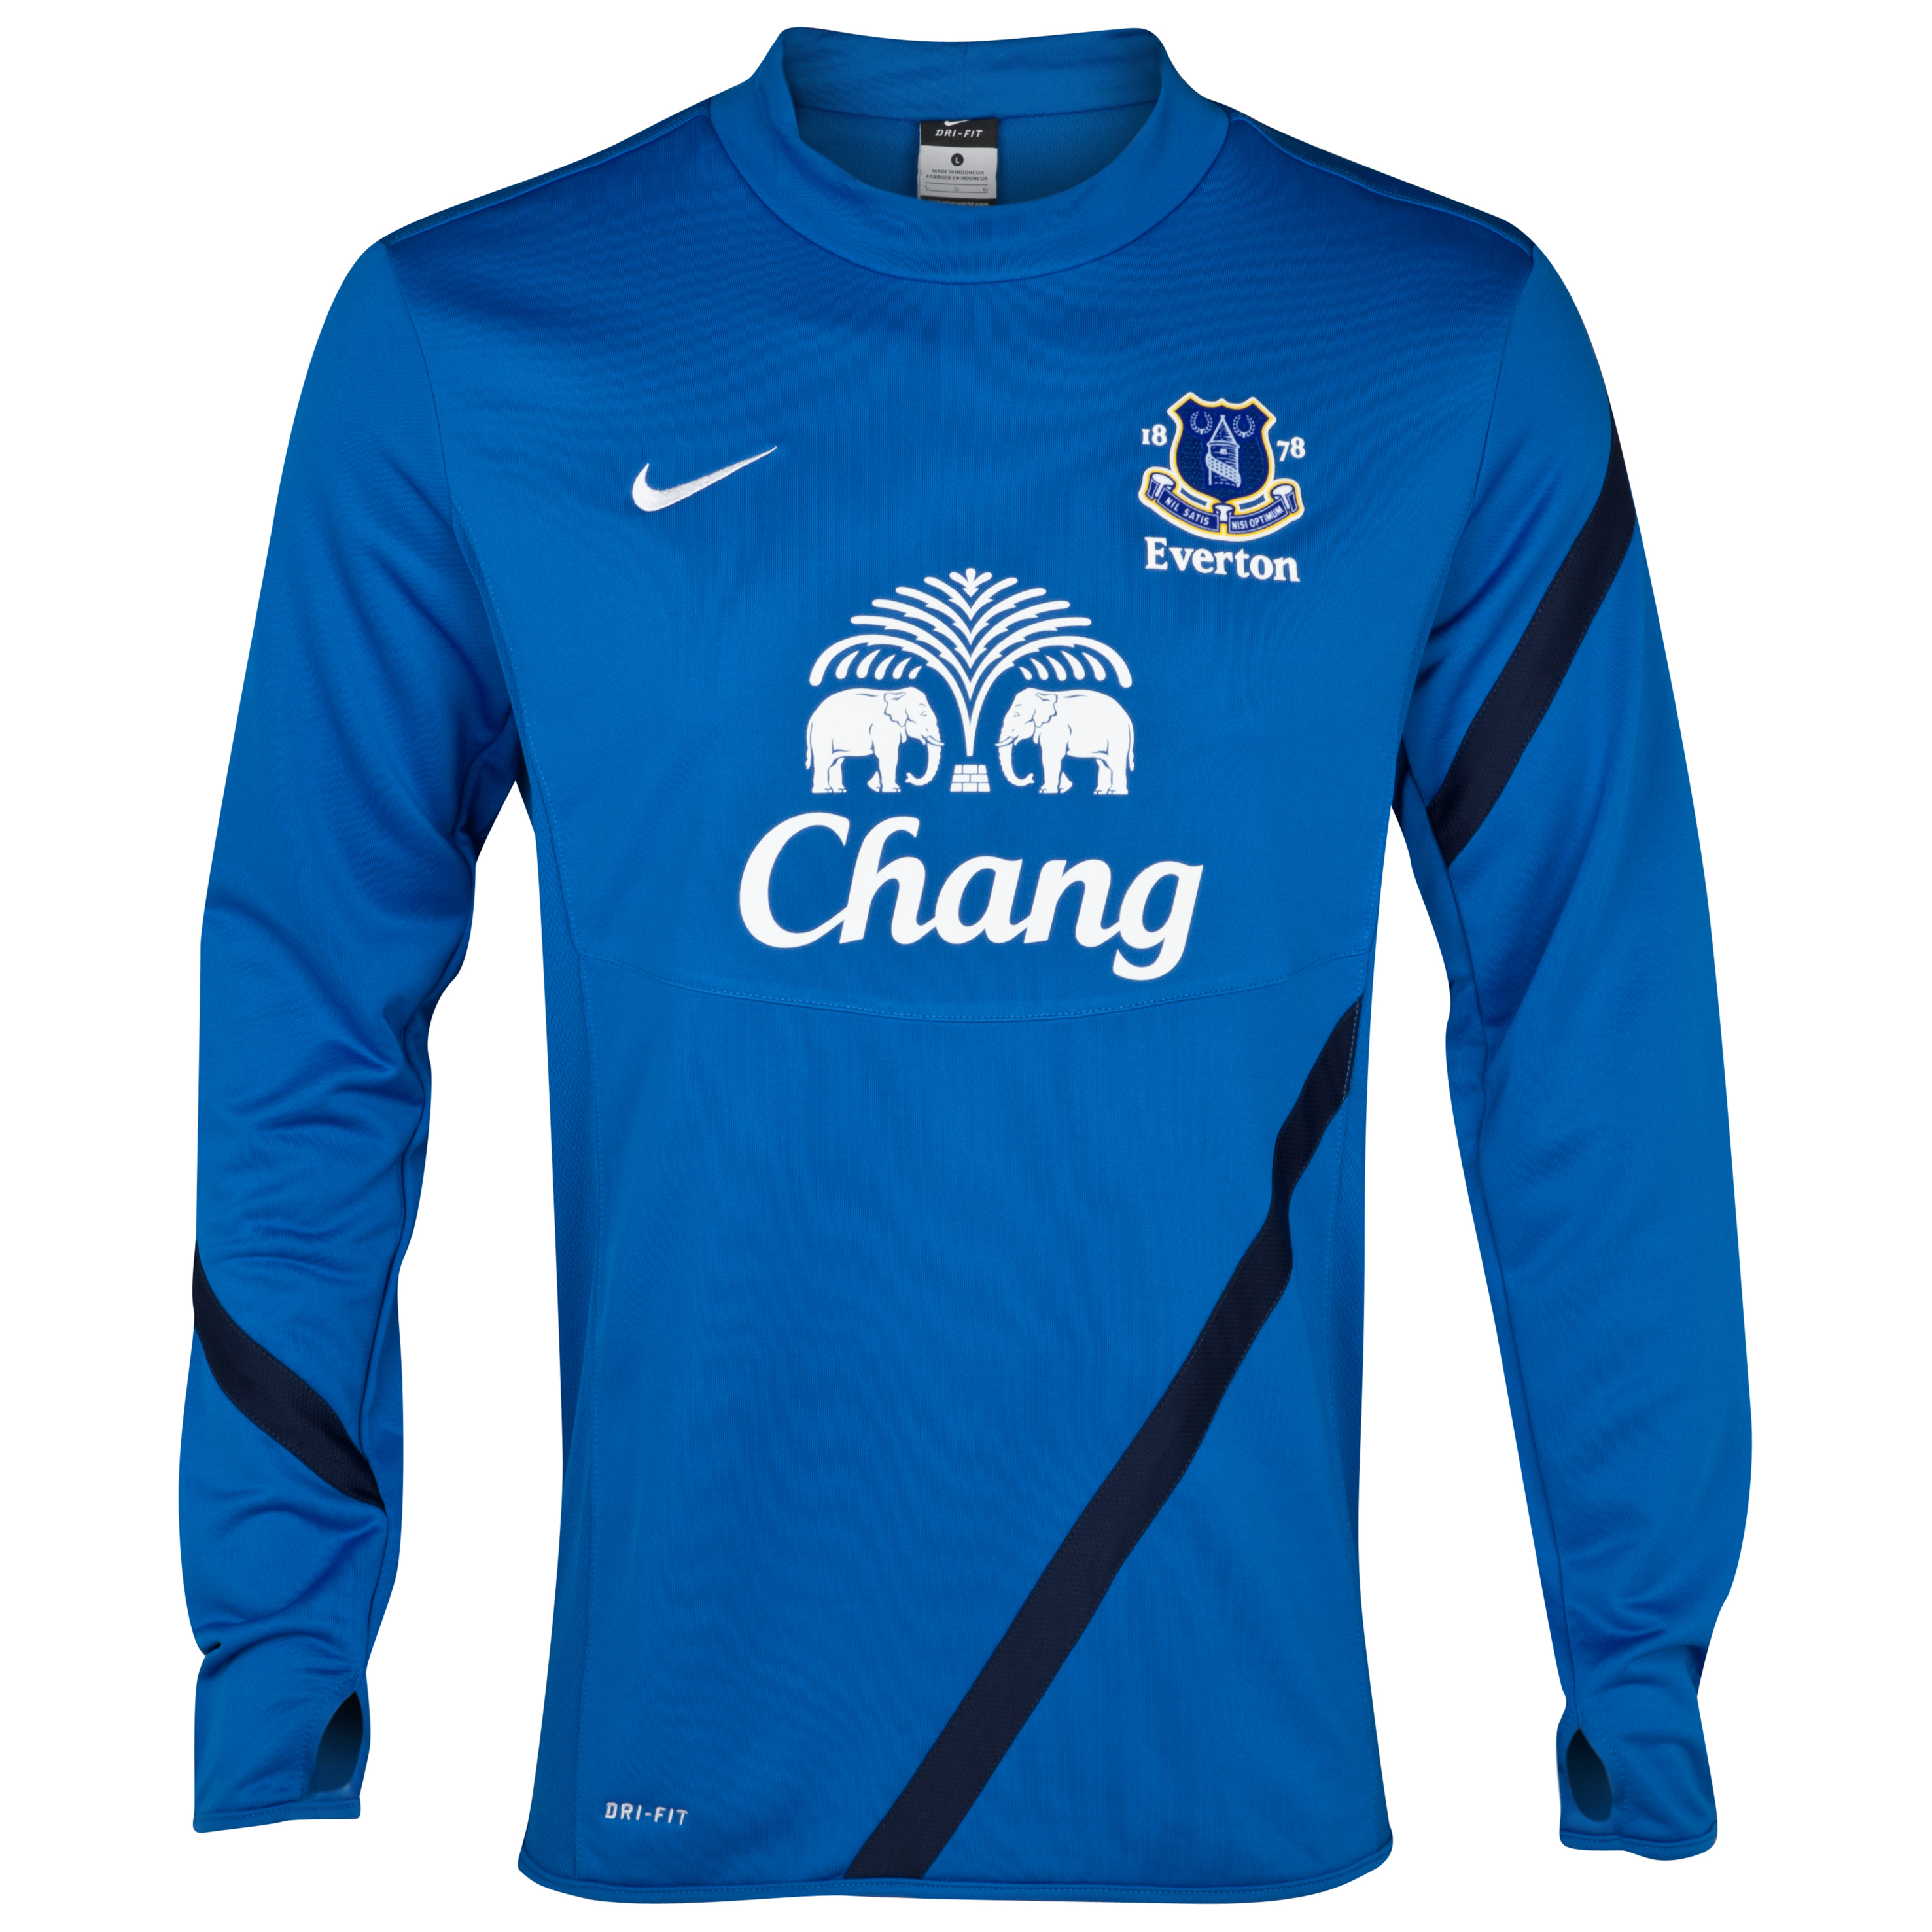 Everton Midlayer Top  - Royal Blue/Obsidian/White